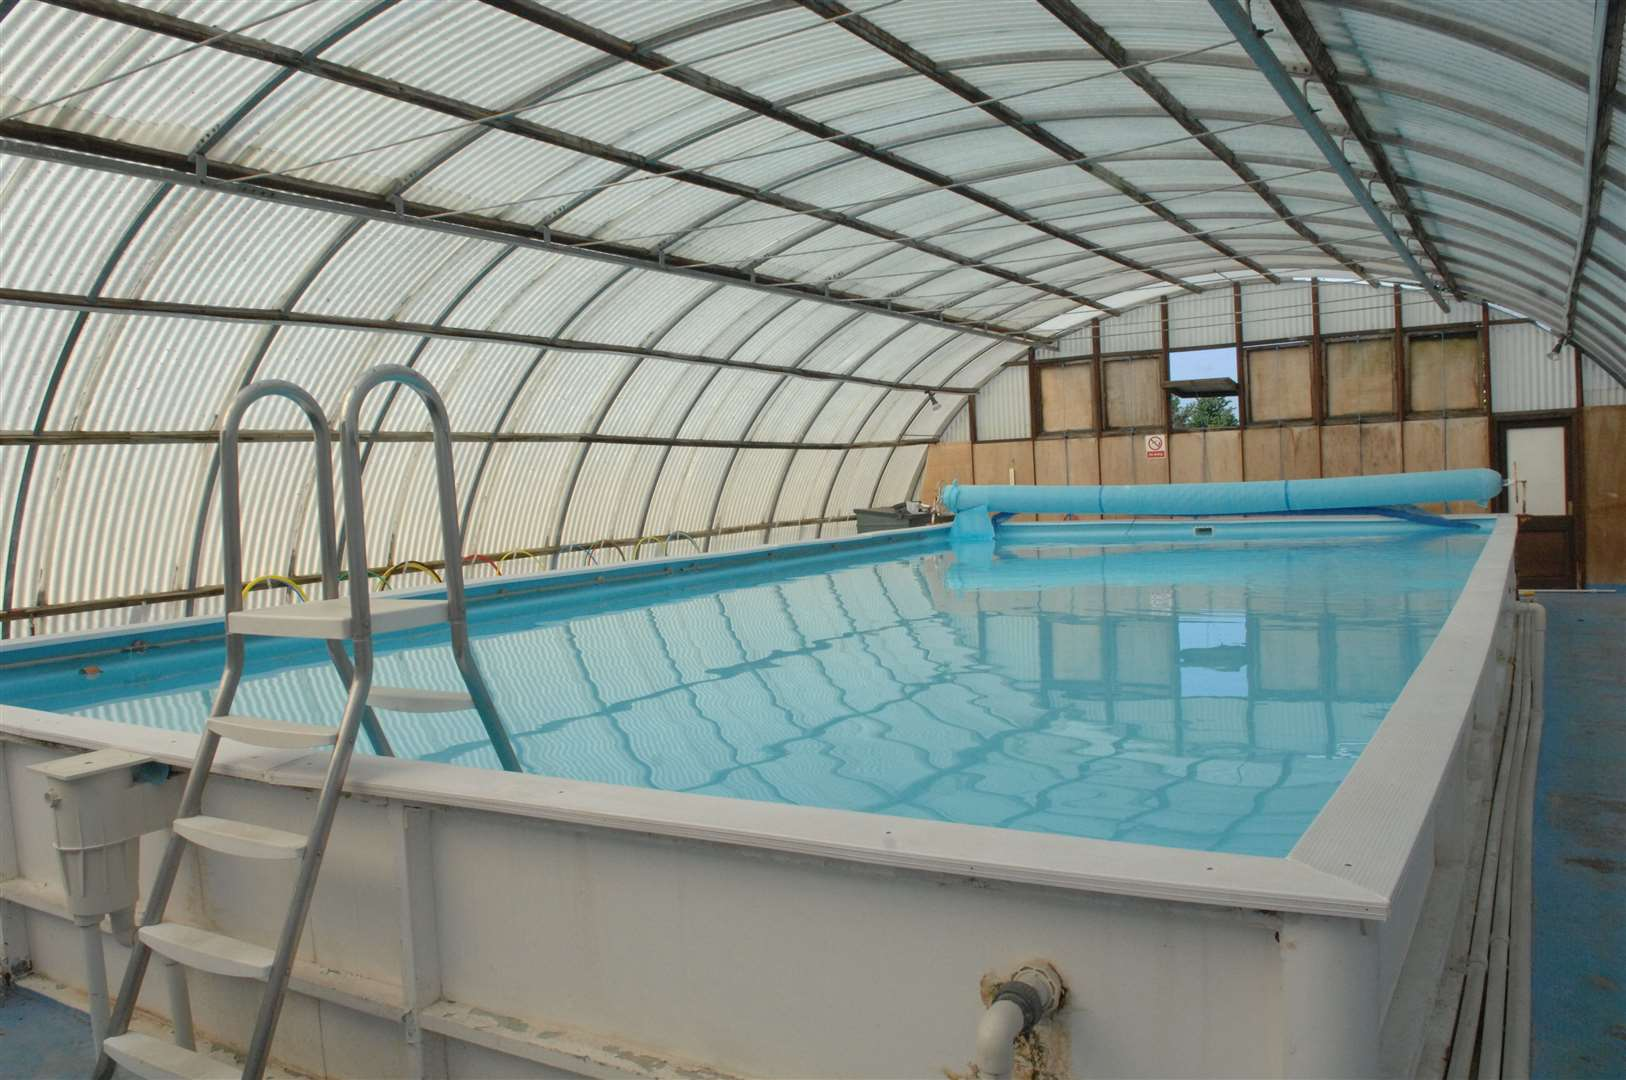 An indoor pool would have been the height of luxury...heated water unheard of